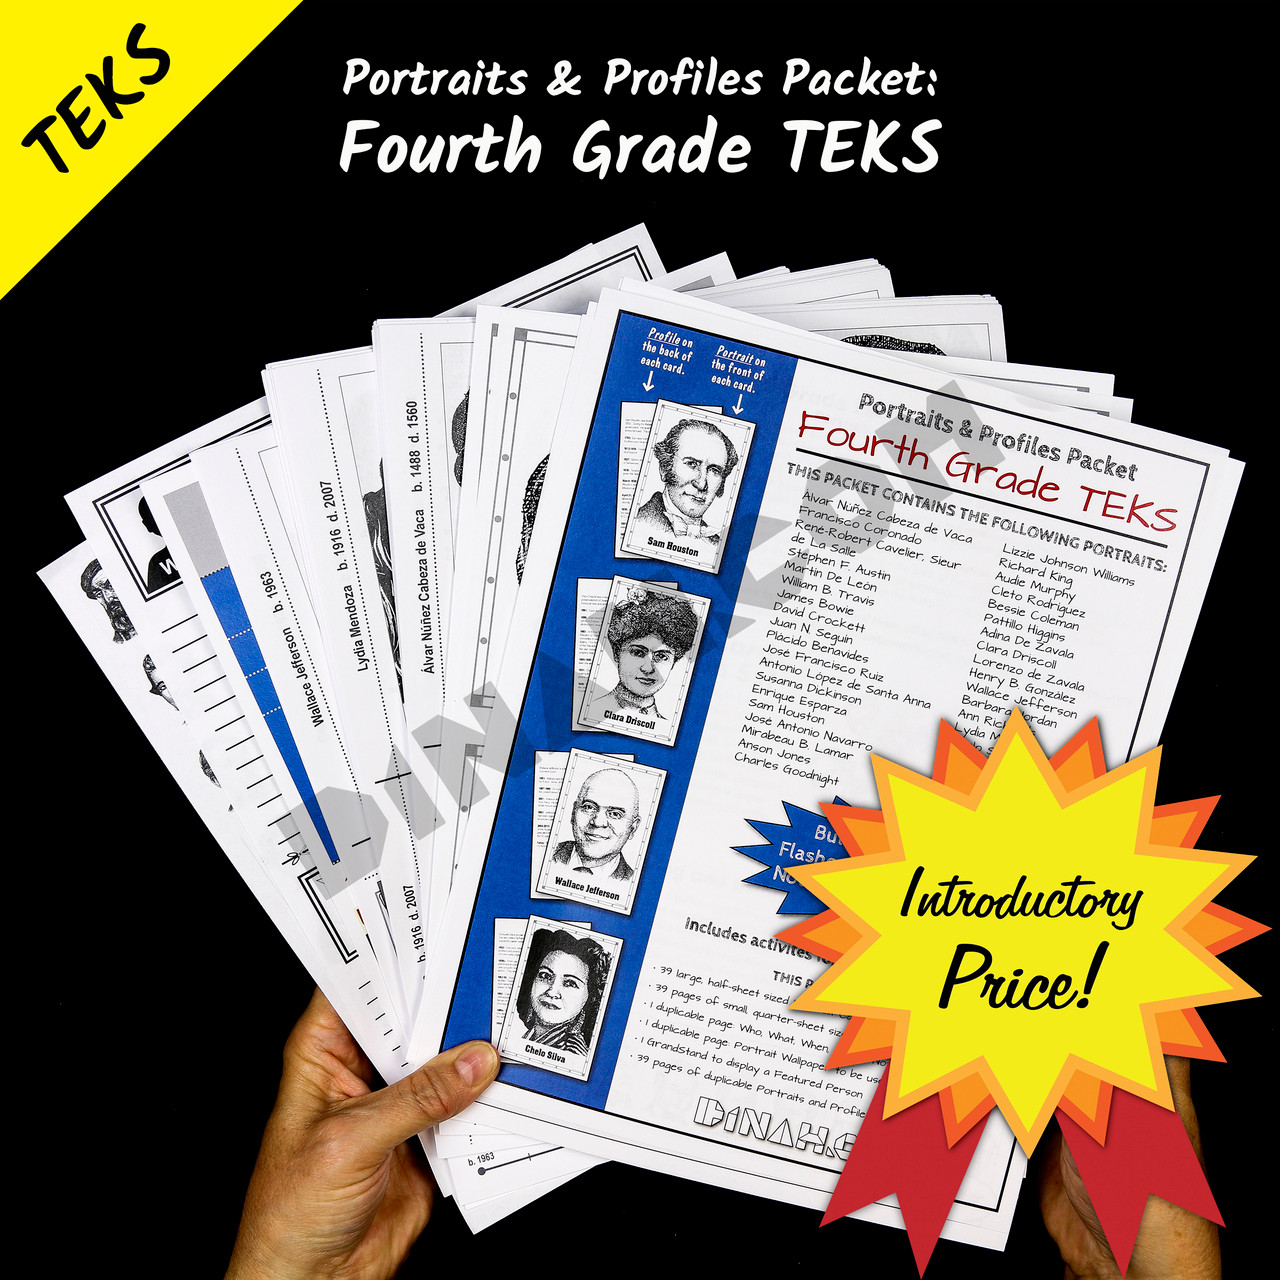 Portraits and Profiles Packet: Fourth Grade TEKS